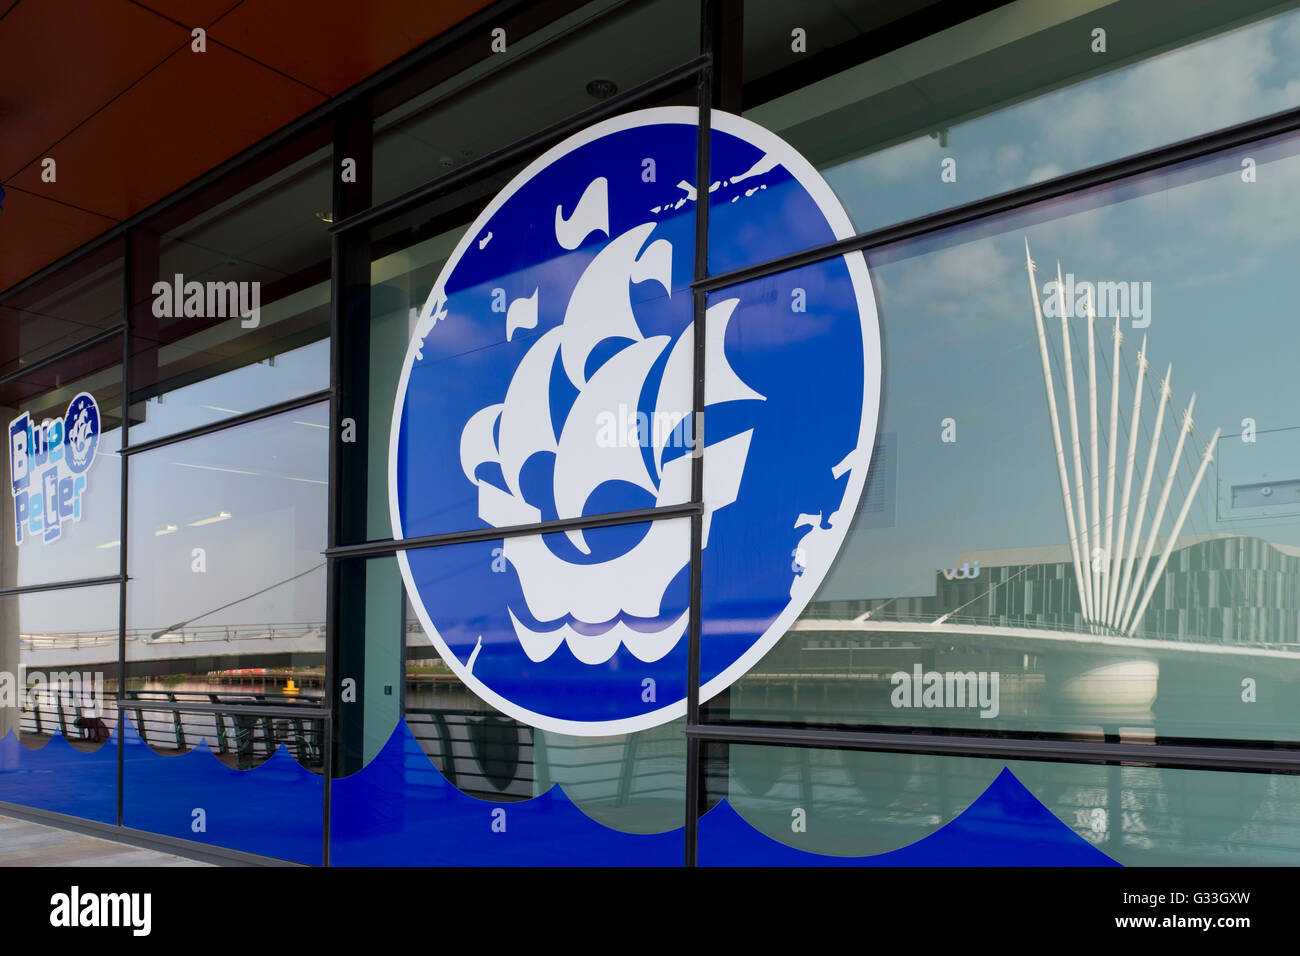 The Blue Peter children's TV show logo on the side of a building at MediaCityUK in the Salford Quays area of - Stock Image